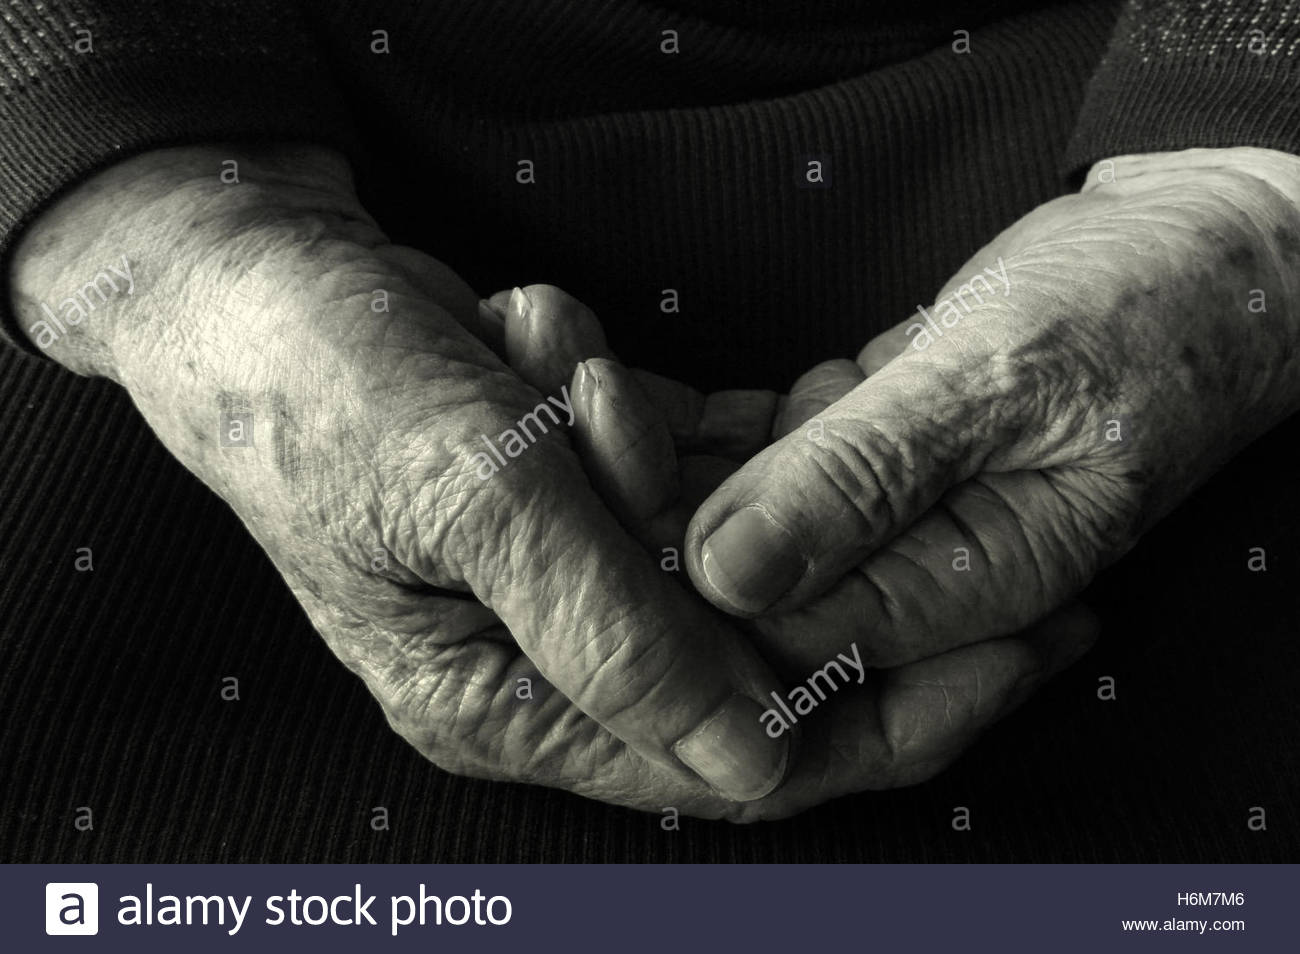 old people - Stock Image